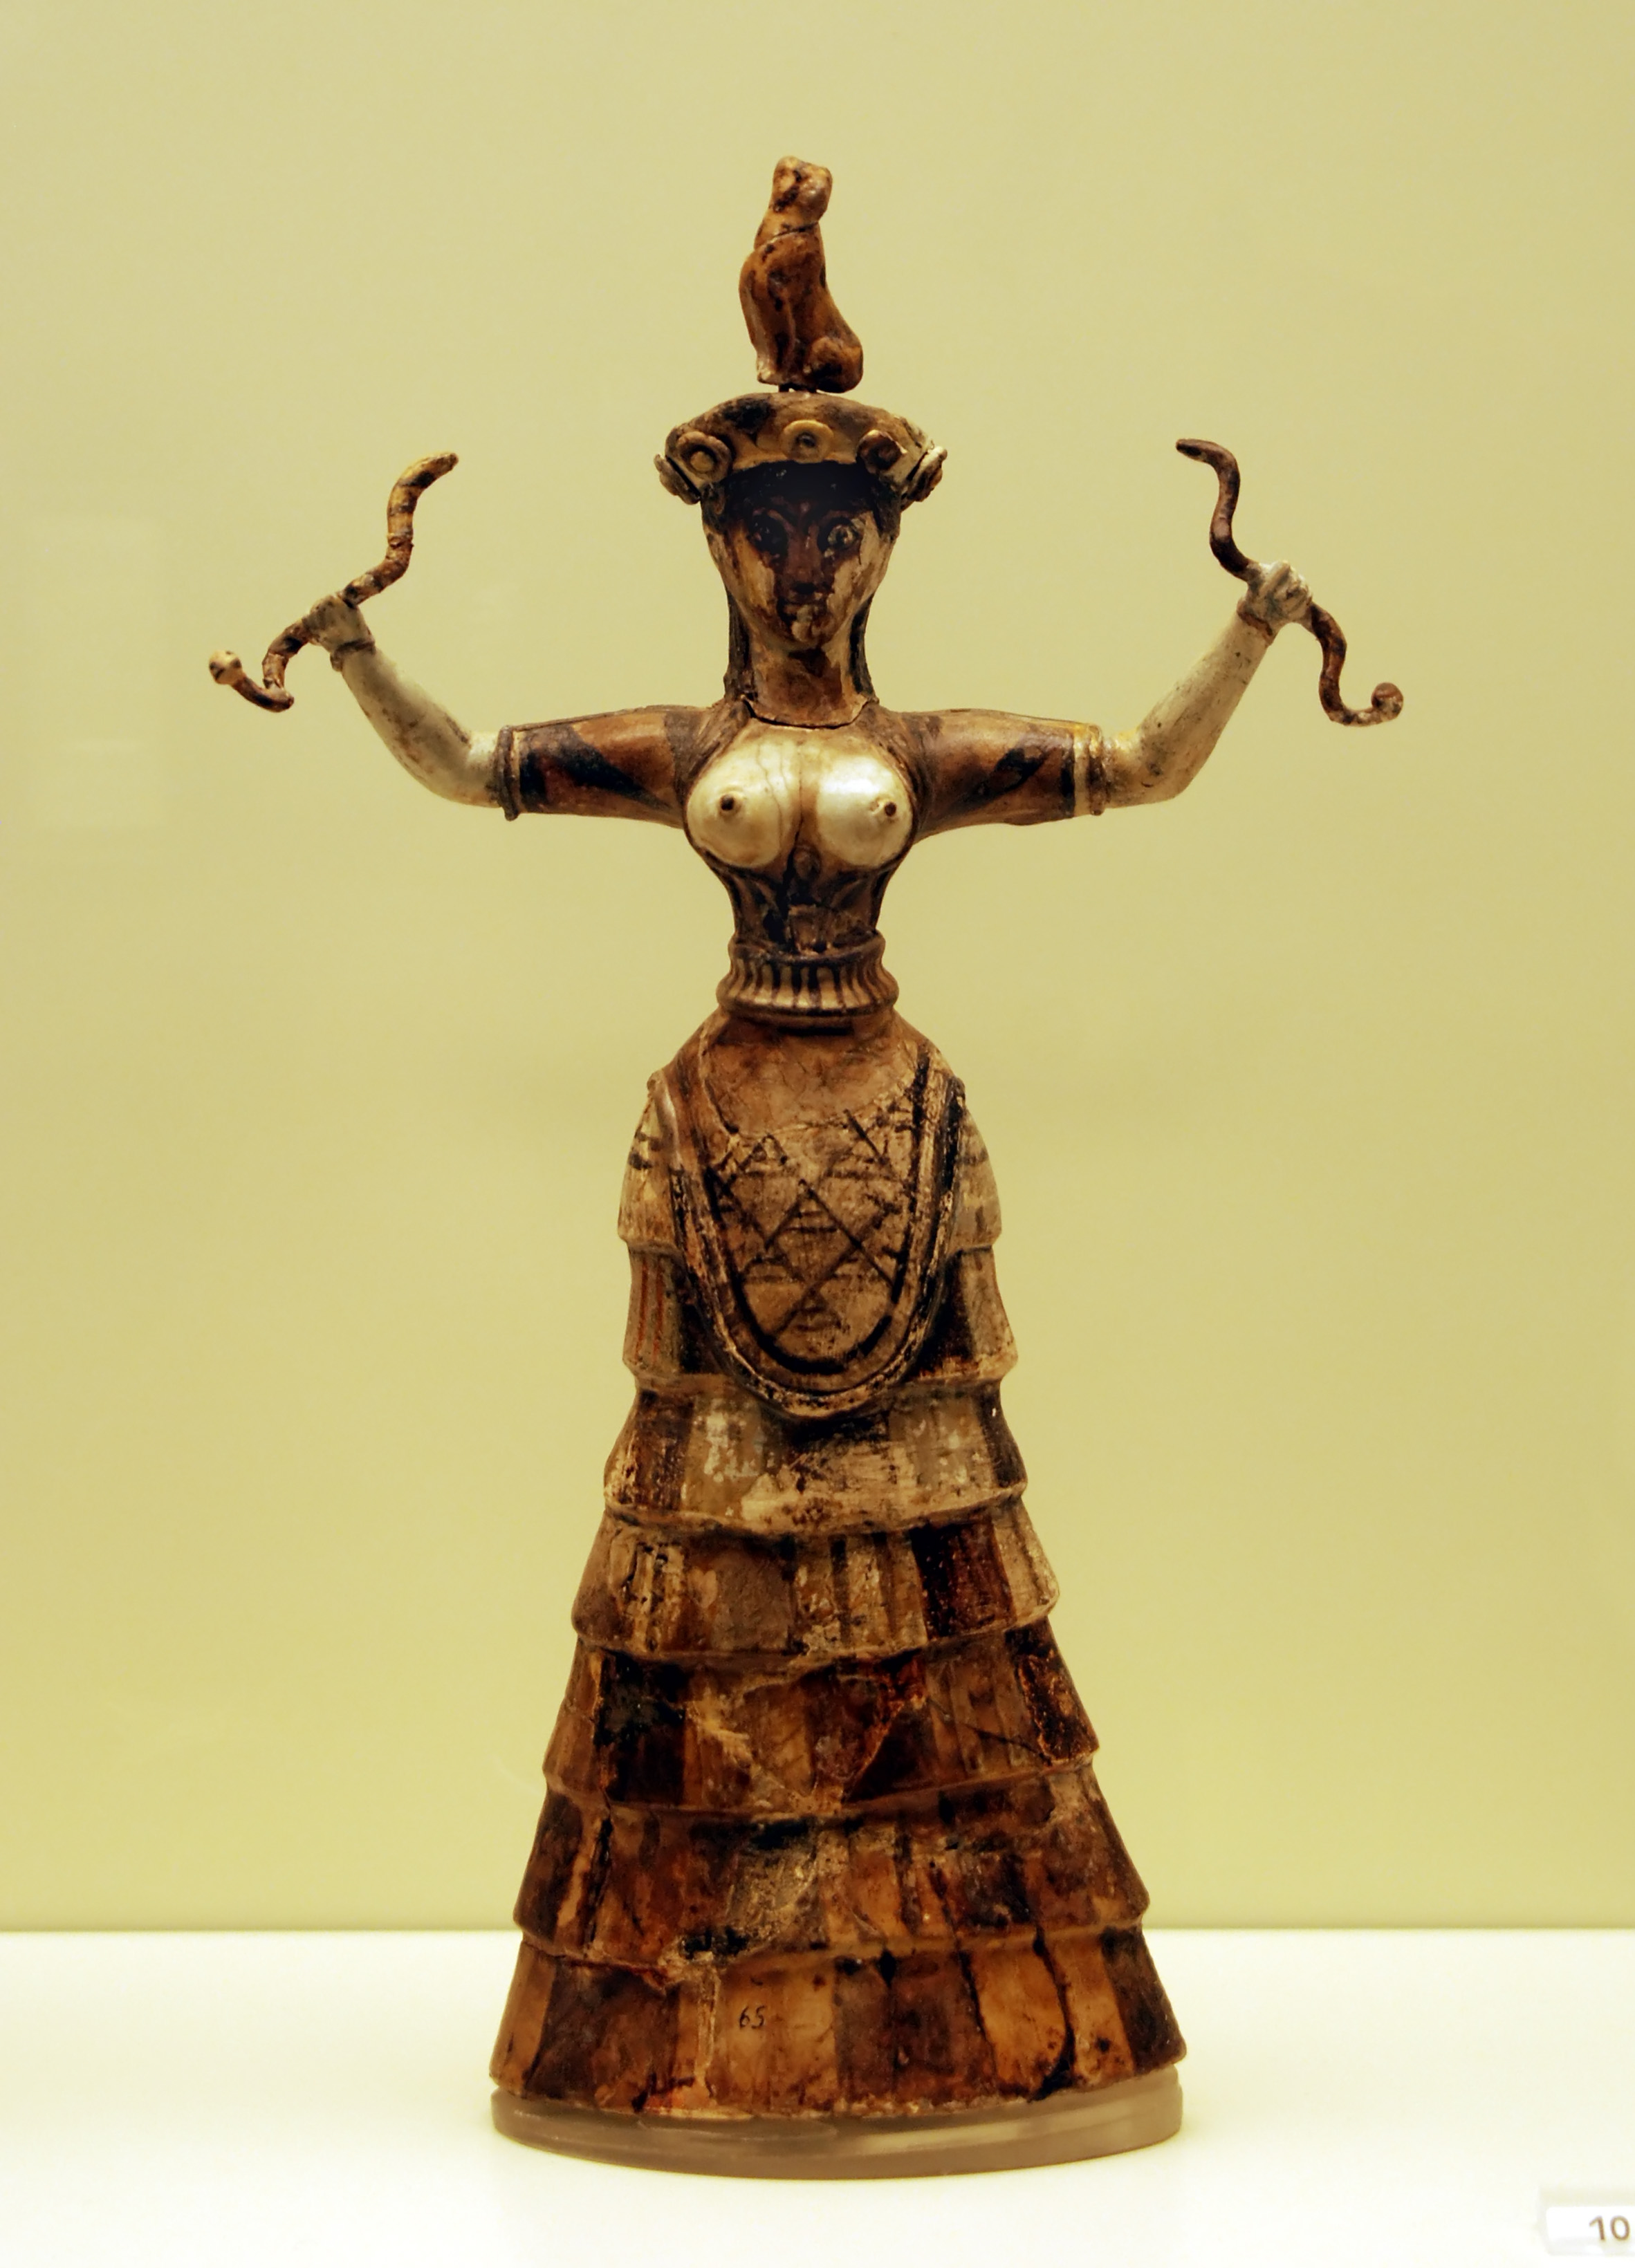 Faience figurine of the Snake Goddess from ancient Crete, with the breasts  supported by a fitted corset-like garment